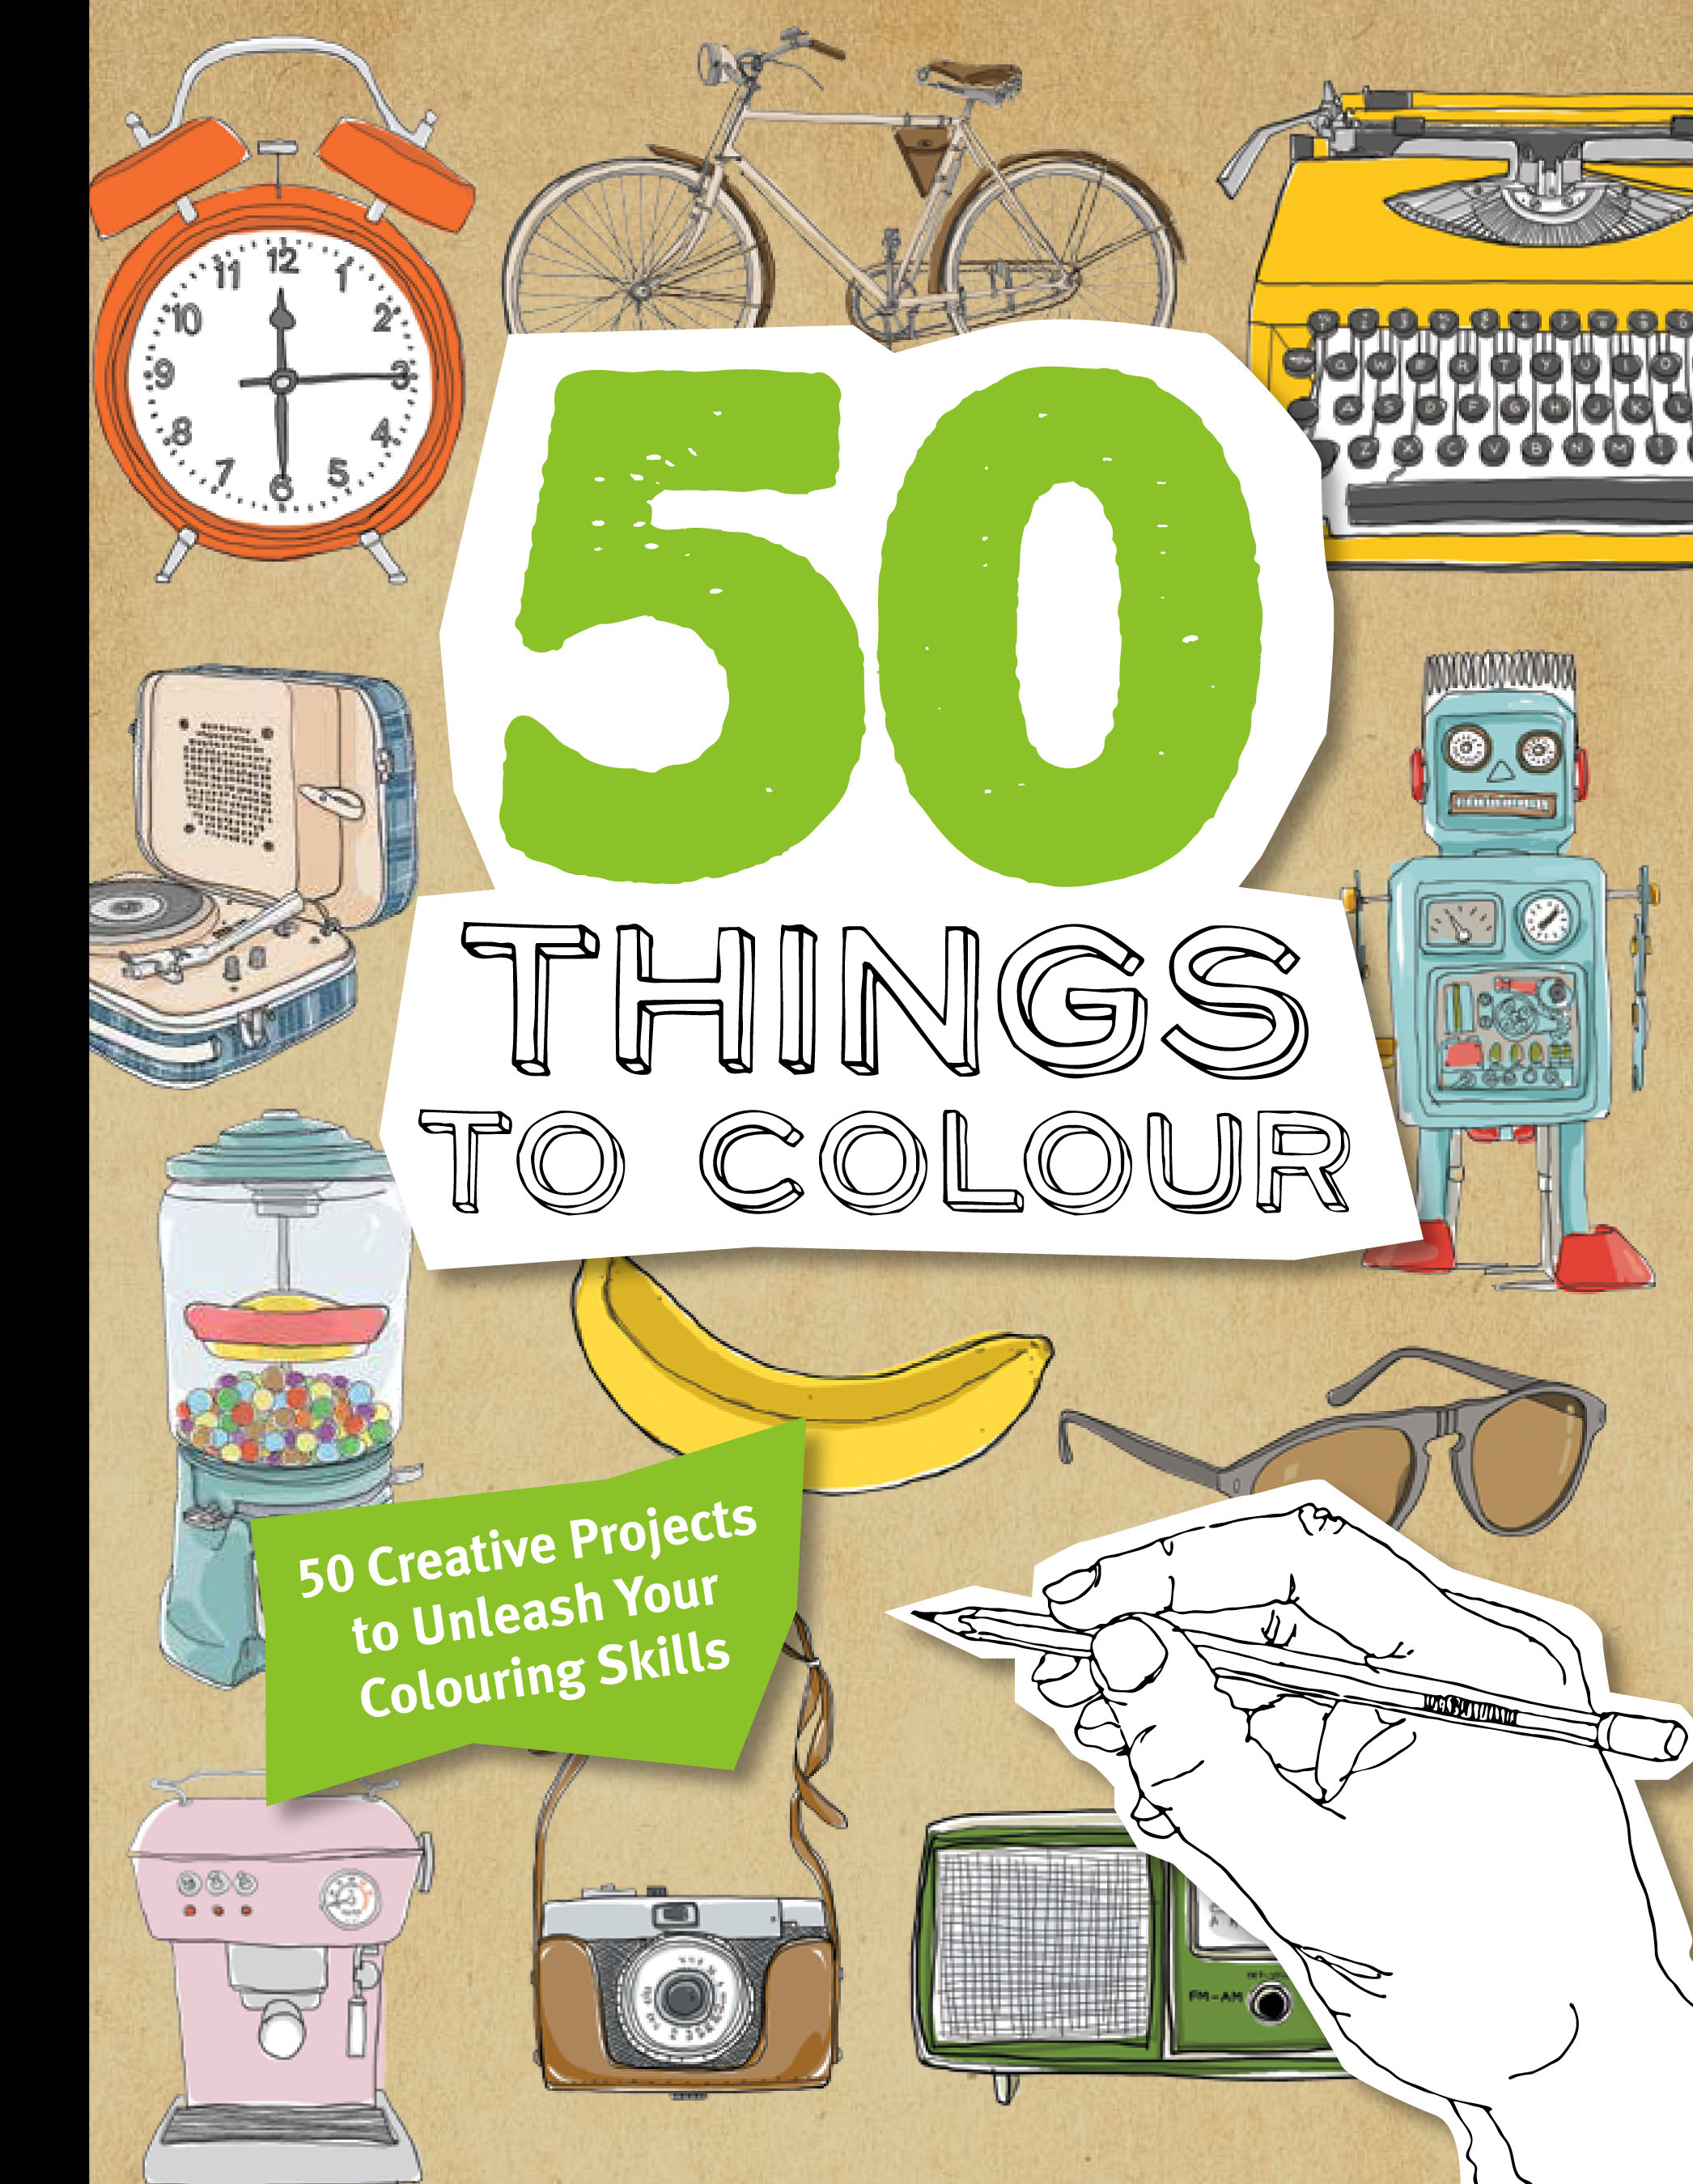 50 Things to Colour - 9781845436117 - Allen & Unwin - Australia